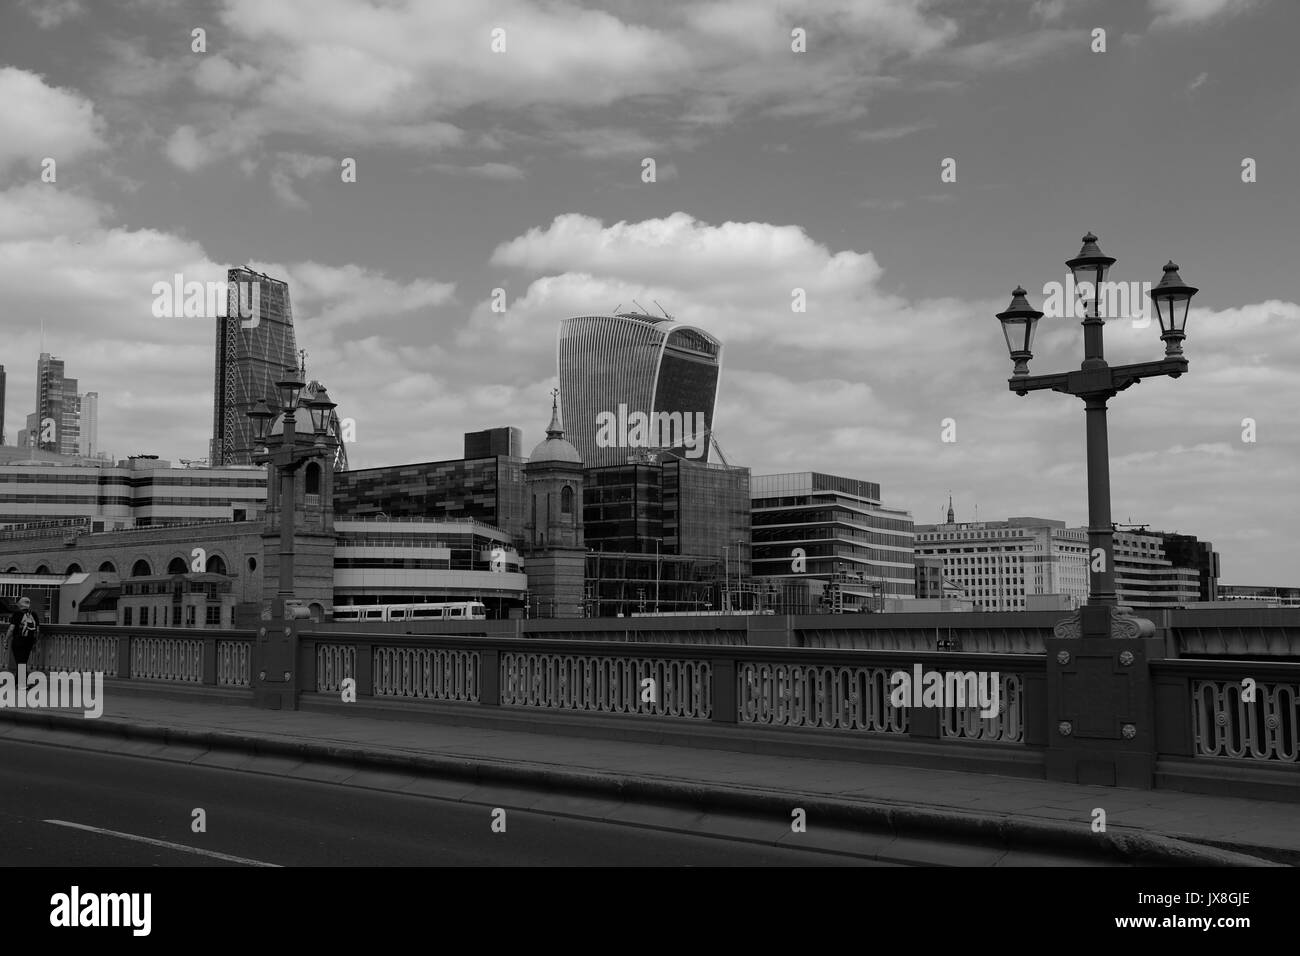 The view from Southwark Bridge showing a train leaving Cannon Street Station, and London's skyscrapers in the background. - Stock Image